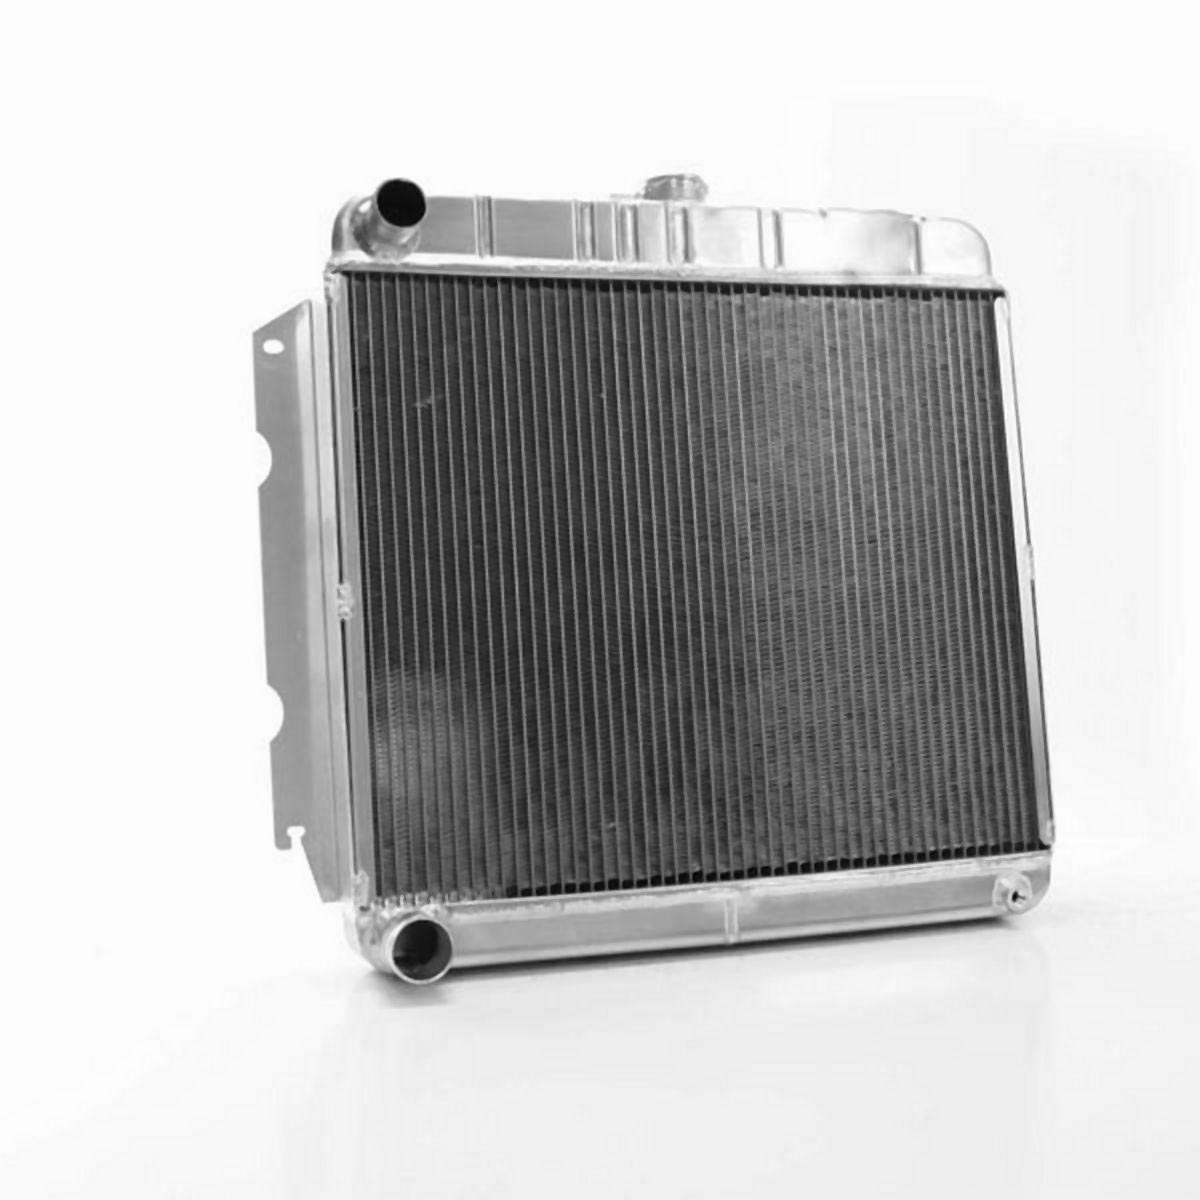 1971 Plymouth Barracuda Griffin Aluminum Radiator - Part Number 5-00028